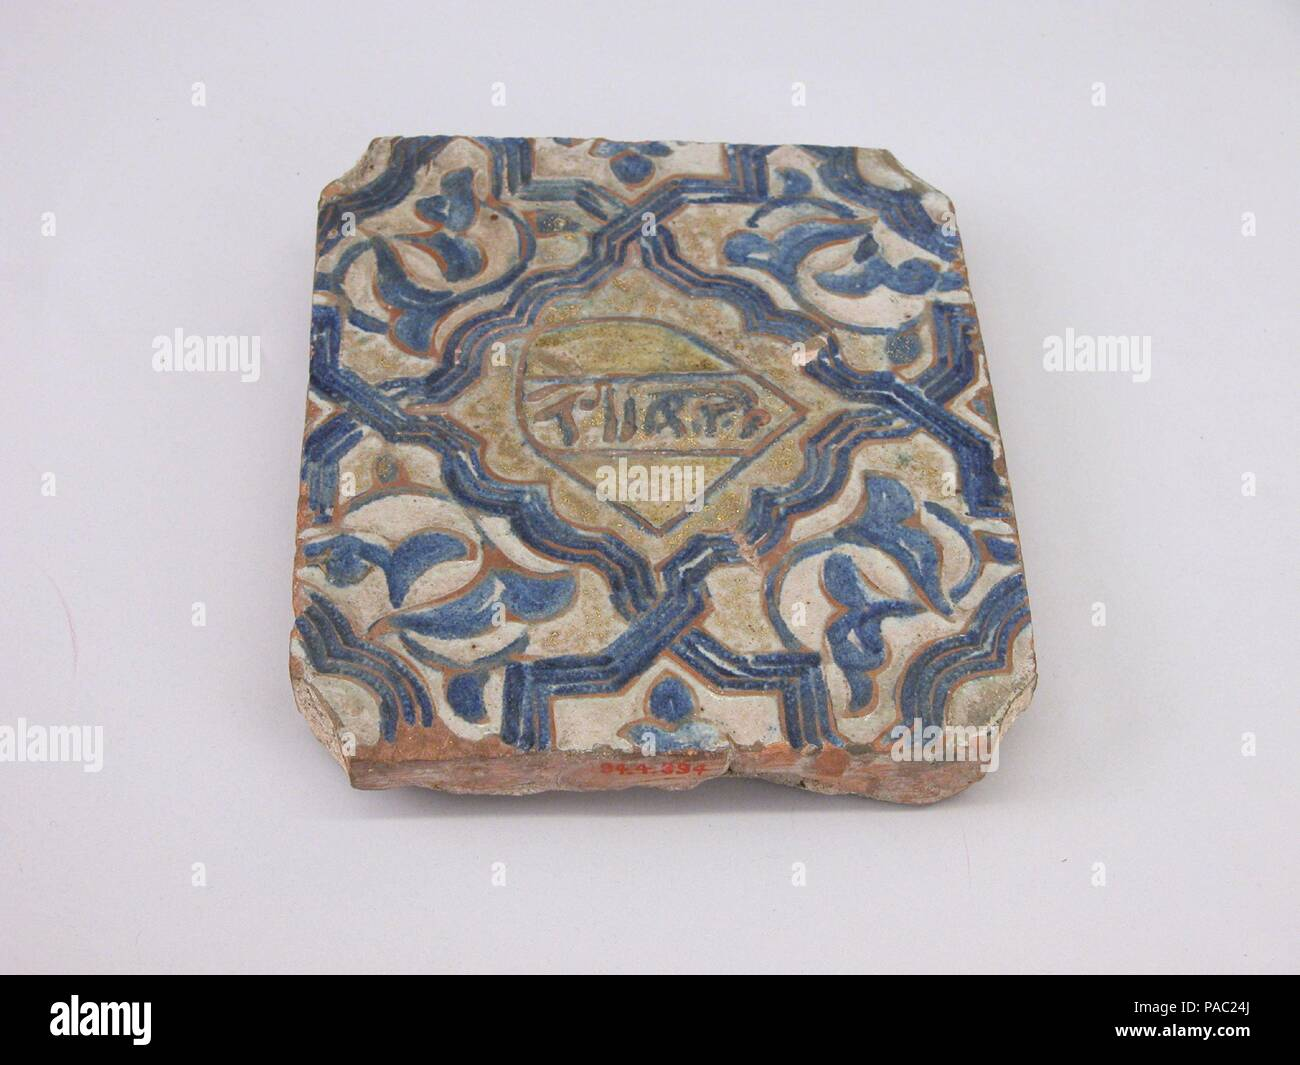 Tile. Dimensions: H. 6 1/2 in. (16.5 cm)  W. 5 1/2 in. (14 cm)  D. 1 in. (2.5 cm). Date: second half 15th century.  So extravagant was the Alhambra palace that even some floors bore expensive ceramic tile. This tile probably comes from the Alhambra's Comares hall where fourteenth-century tiles were replaced in the late fifteenth century by new ones like this example, bearing similar designs but executed in cuerda seca. The tiles paving the hall today date to the sixteenth century. Museum: Metropolitan Museum of Art, New York, USA. Stock Photo